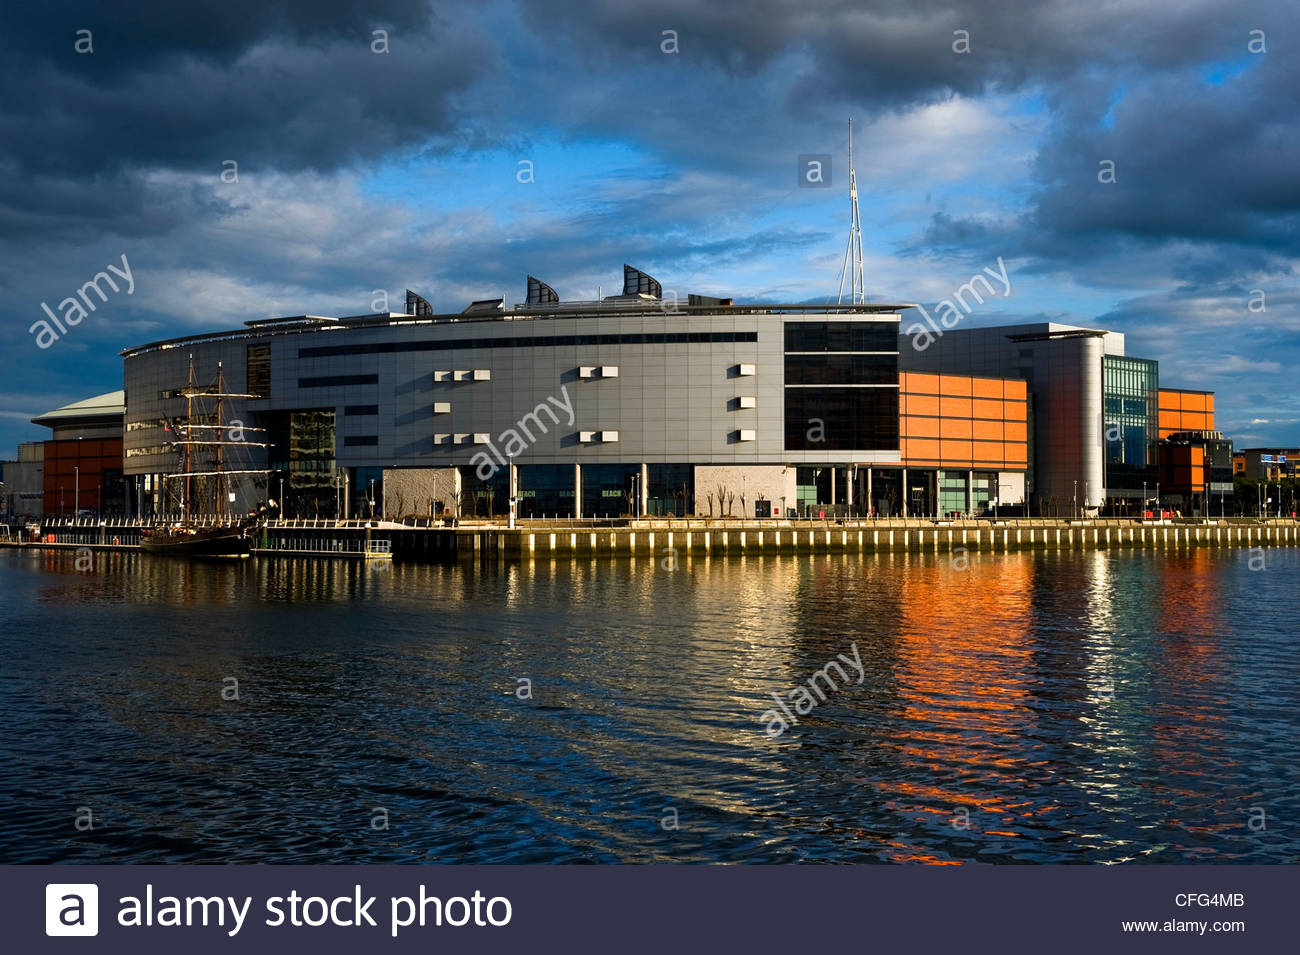 Odyssey Arena in Belfast. - Stock Image